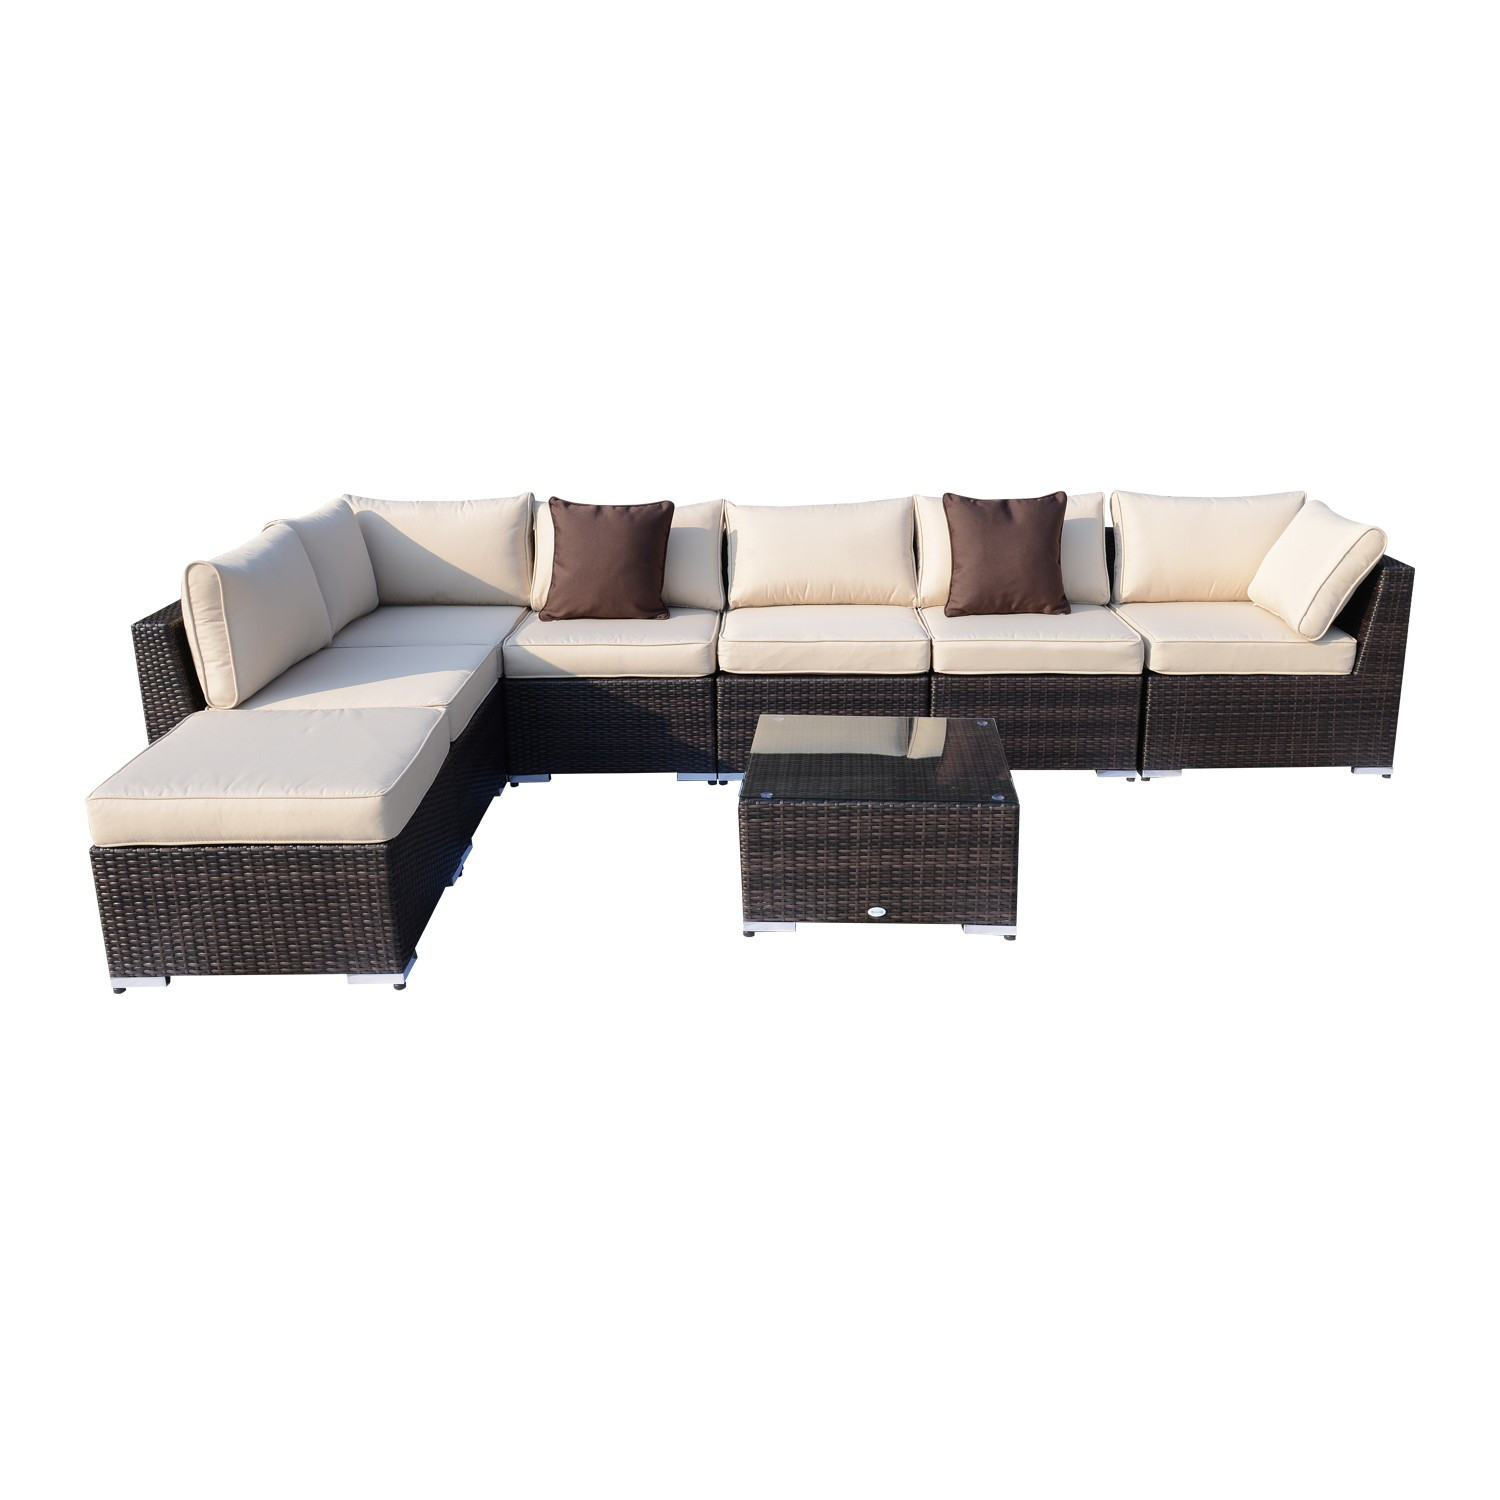 Best ideas about Outsunny Patio Furniture . Save or Pin Outsunny 8pcs outdoor rattan patio furniture set Now.